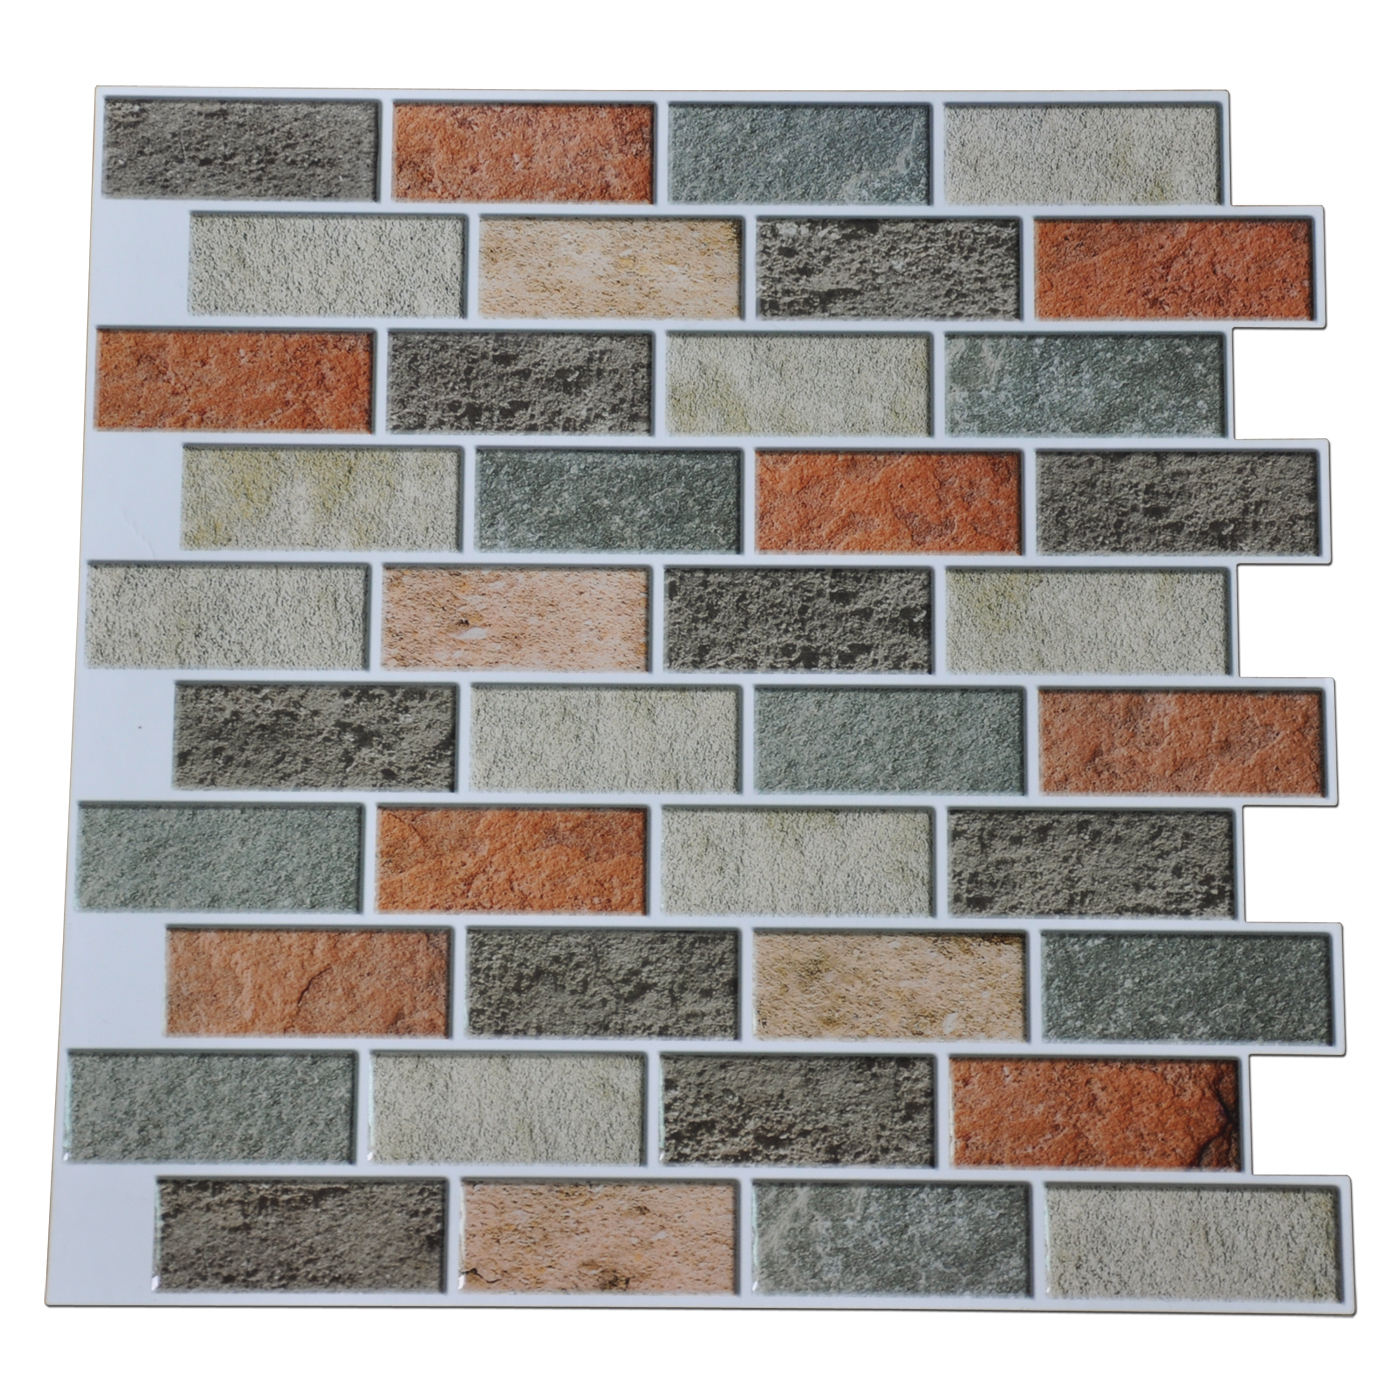 Art3d Peel And Stick Kitchen Backsplash Self Adhesive Subway Tile 12 X12 Faux Stone Mosaic 10 Pack Walmart Com Walmart Com